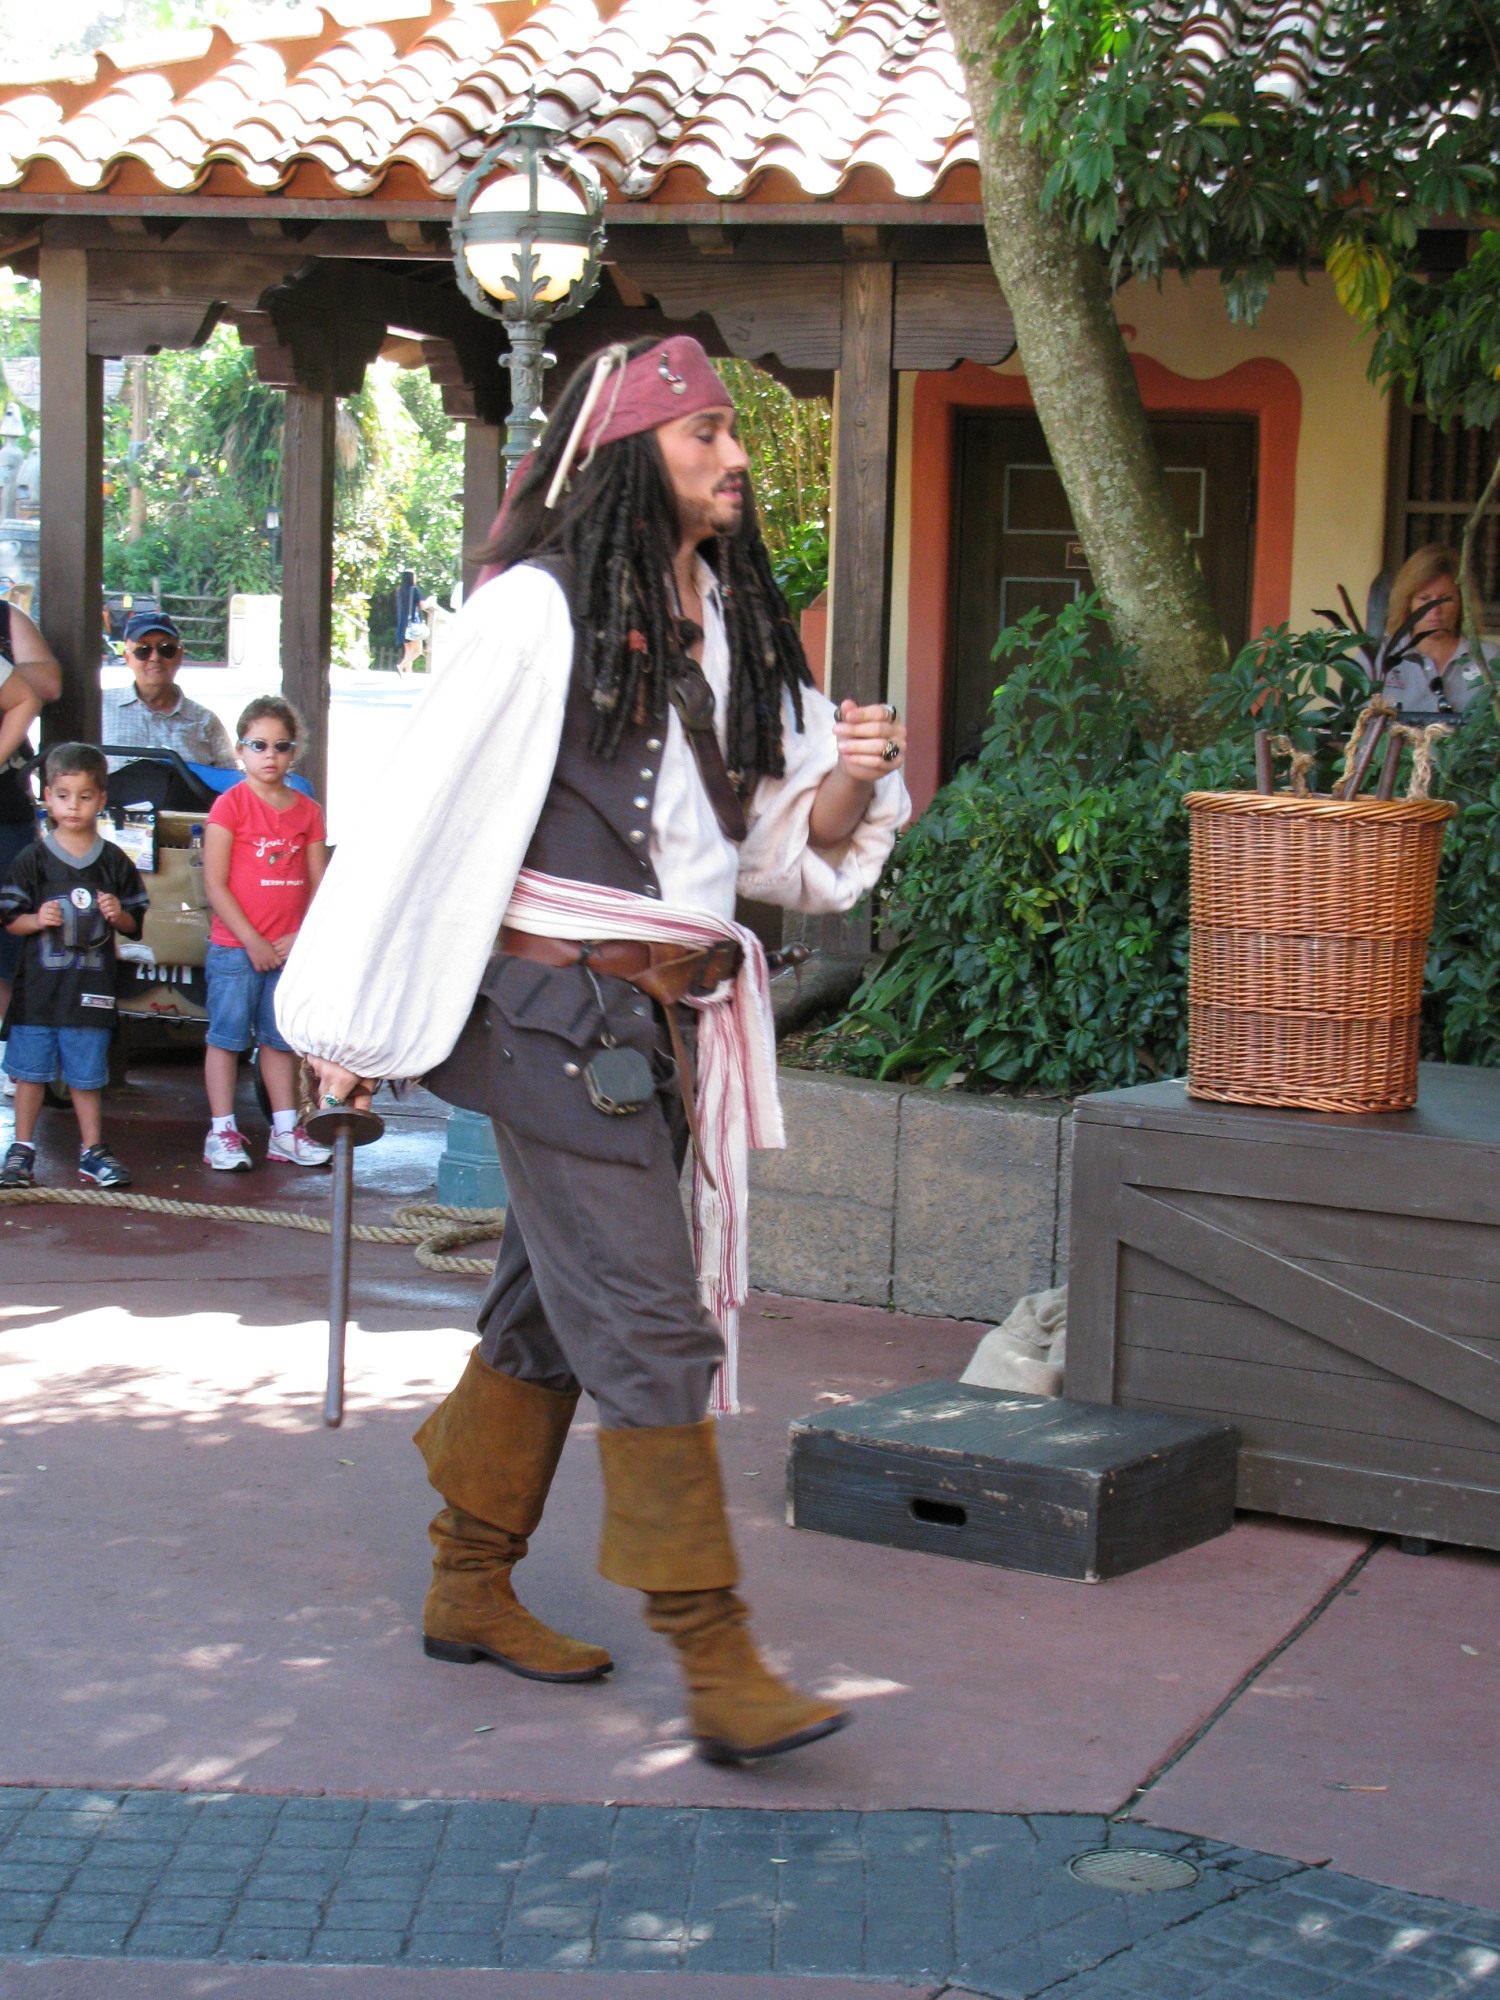 Magic Kingdom - Adventureland - Pirate Tutorial